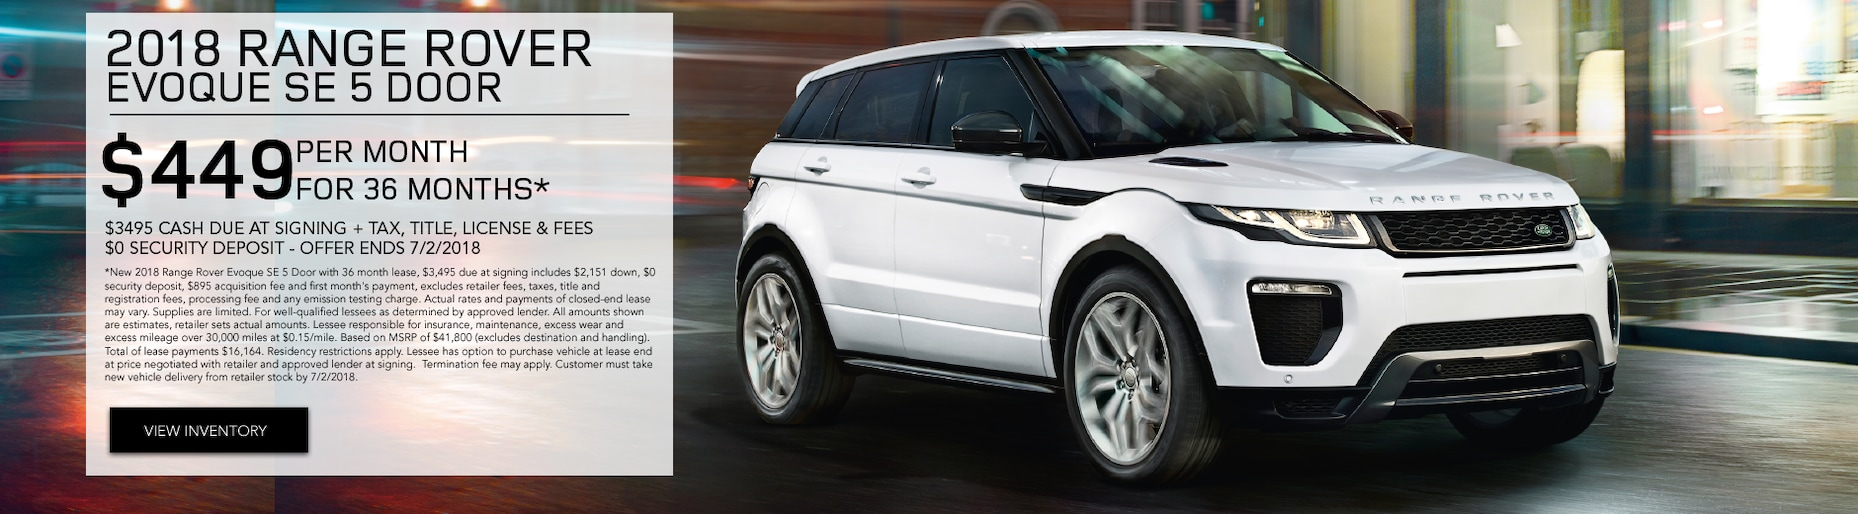 chicago evoque watch cars pure this land plus rover direct presents landrover range youtube